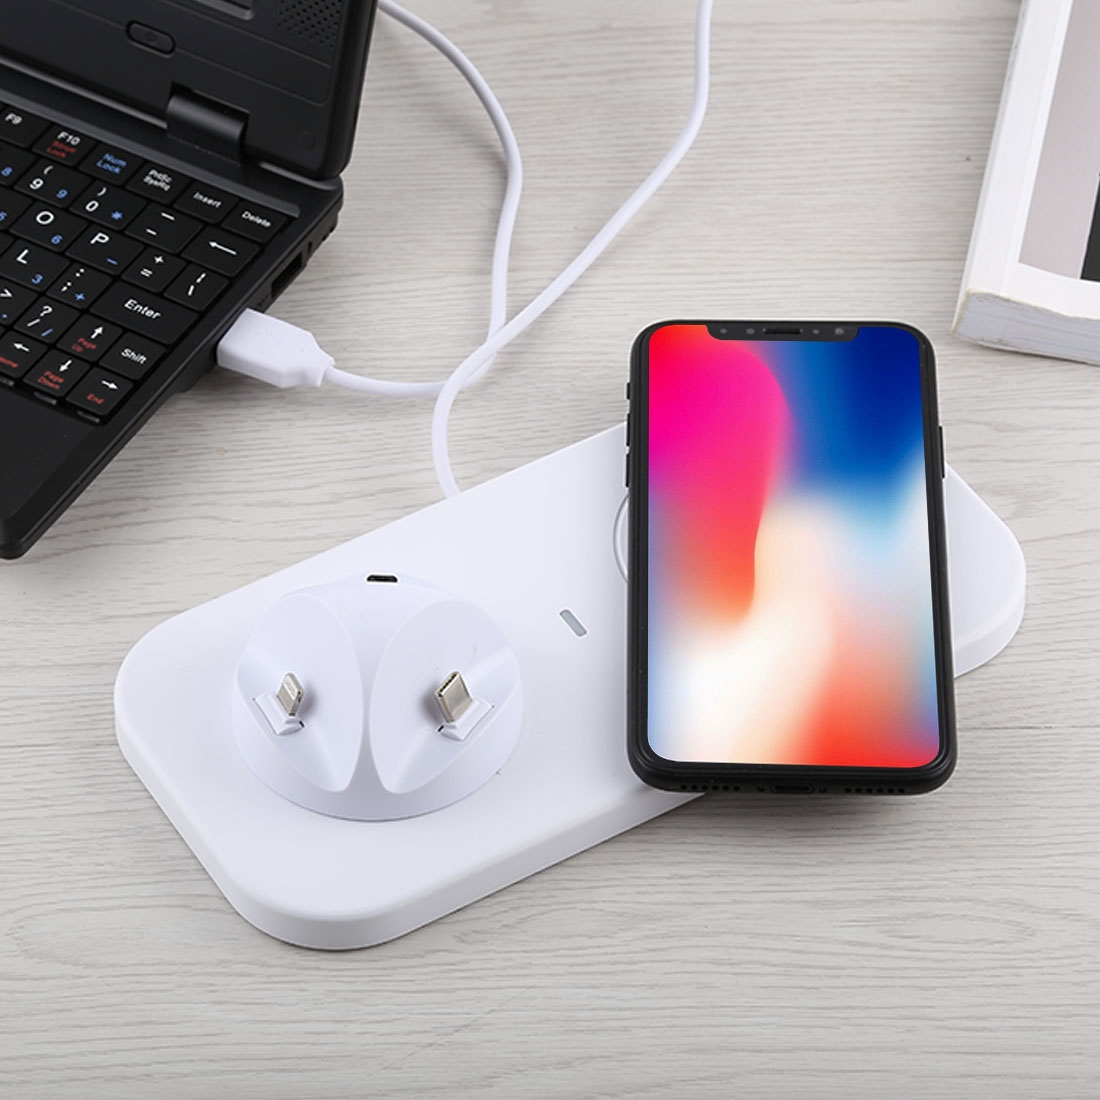 USB to 3 in 1 (8 Pin + Micro USB + USB-C / Type-C) Dock Charger Desktop Charging Data Sync Stand Station Holder with Qi Wireless Charger & USB Cable